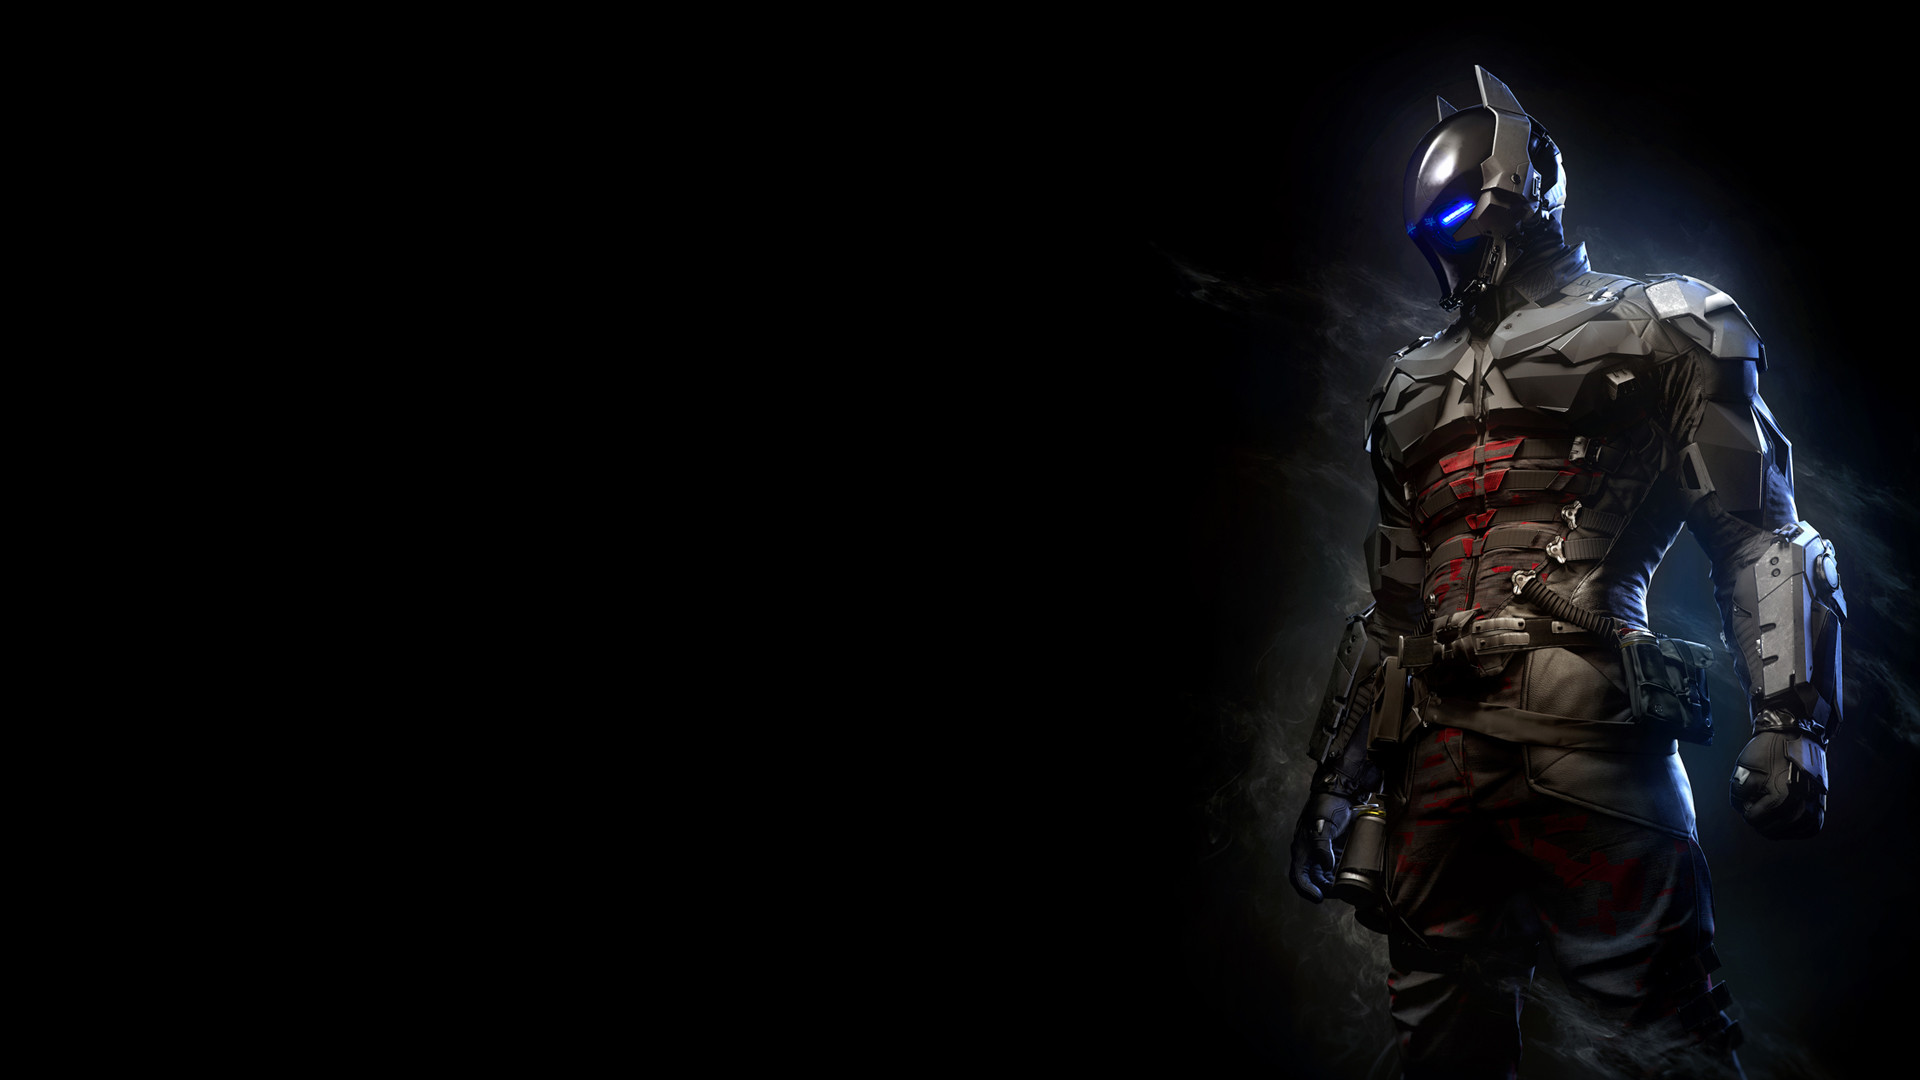 Batman Arkham Knight wallpaper 15 1920x1080